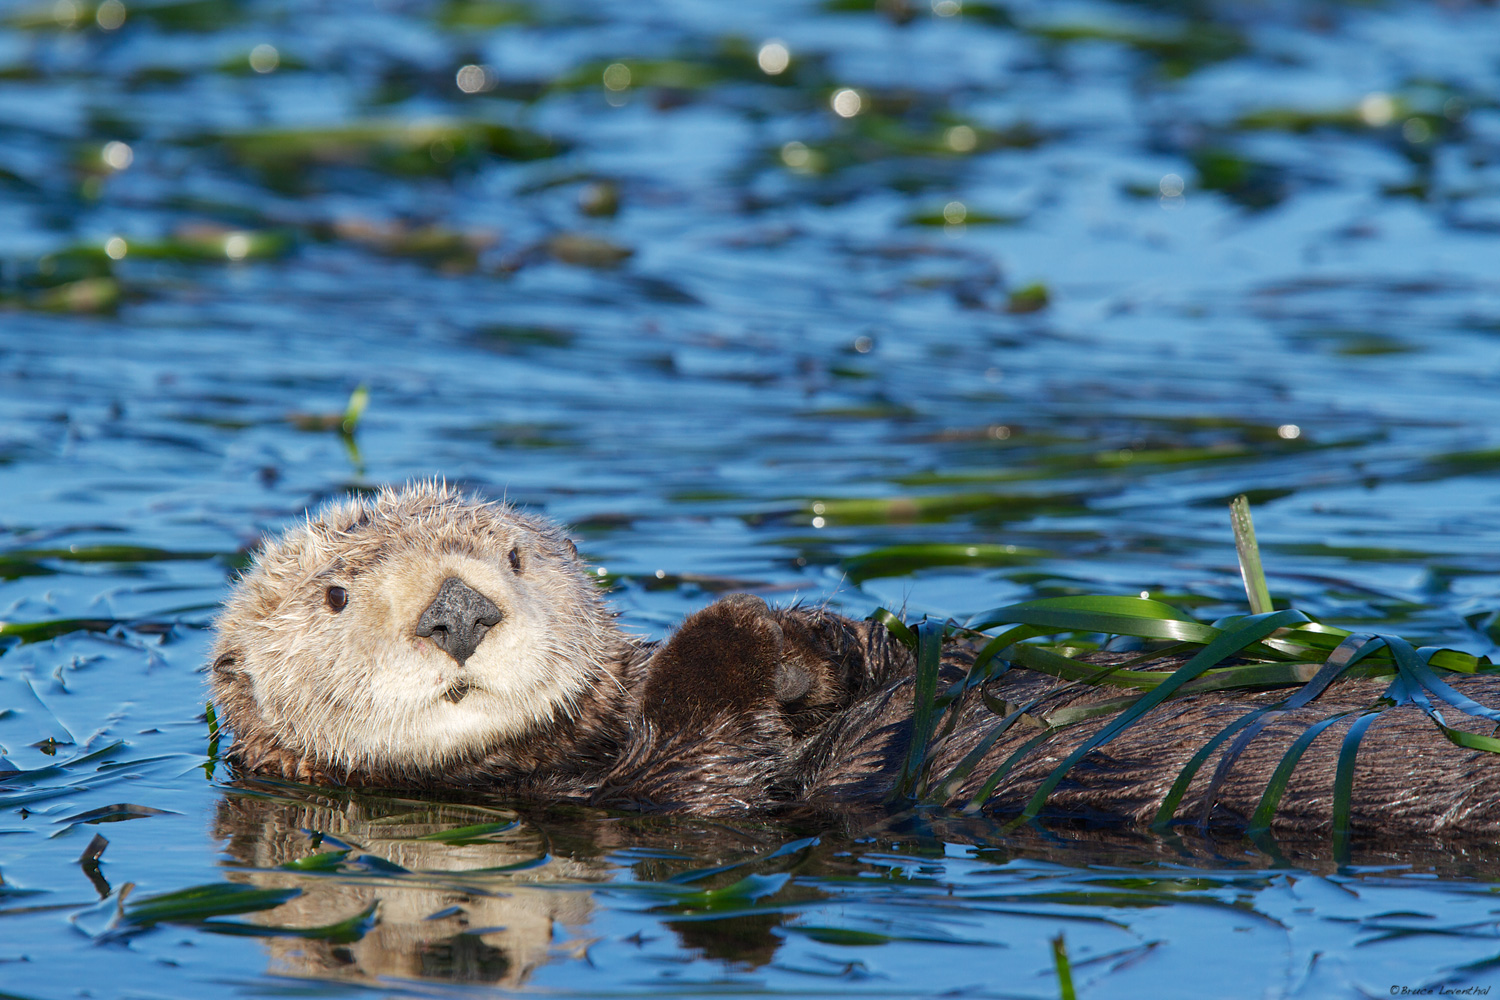 Sea Otter  (Enhydra lutris)  - Elkhorn Slough, CA  Canon 7D, Canon 300 f2.8L IS, Canon 1.4x converter: 1/500 @ f4.5